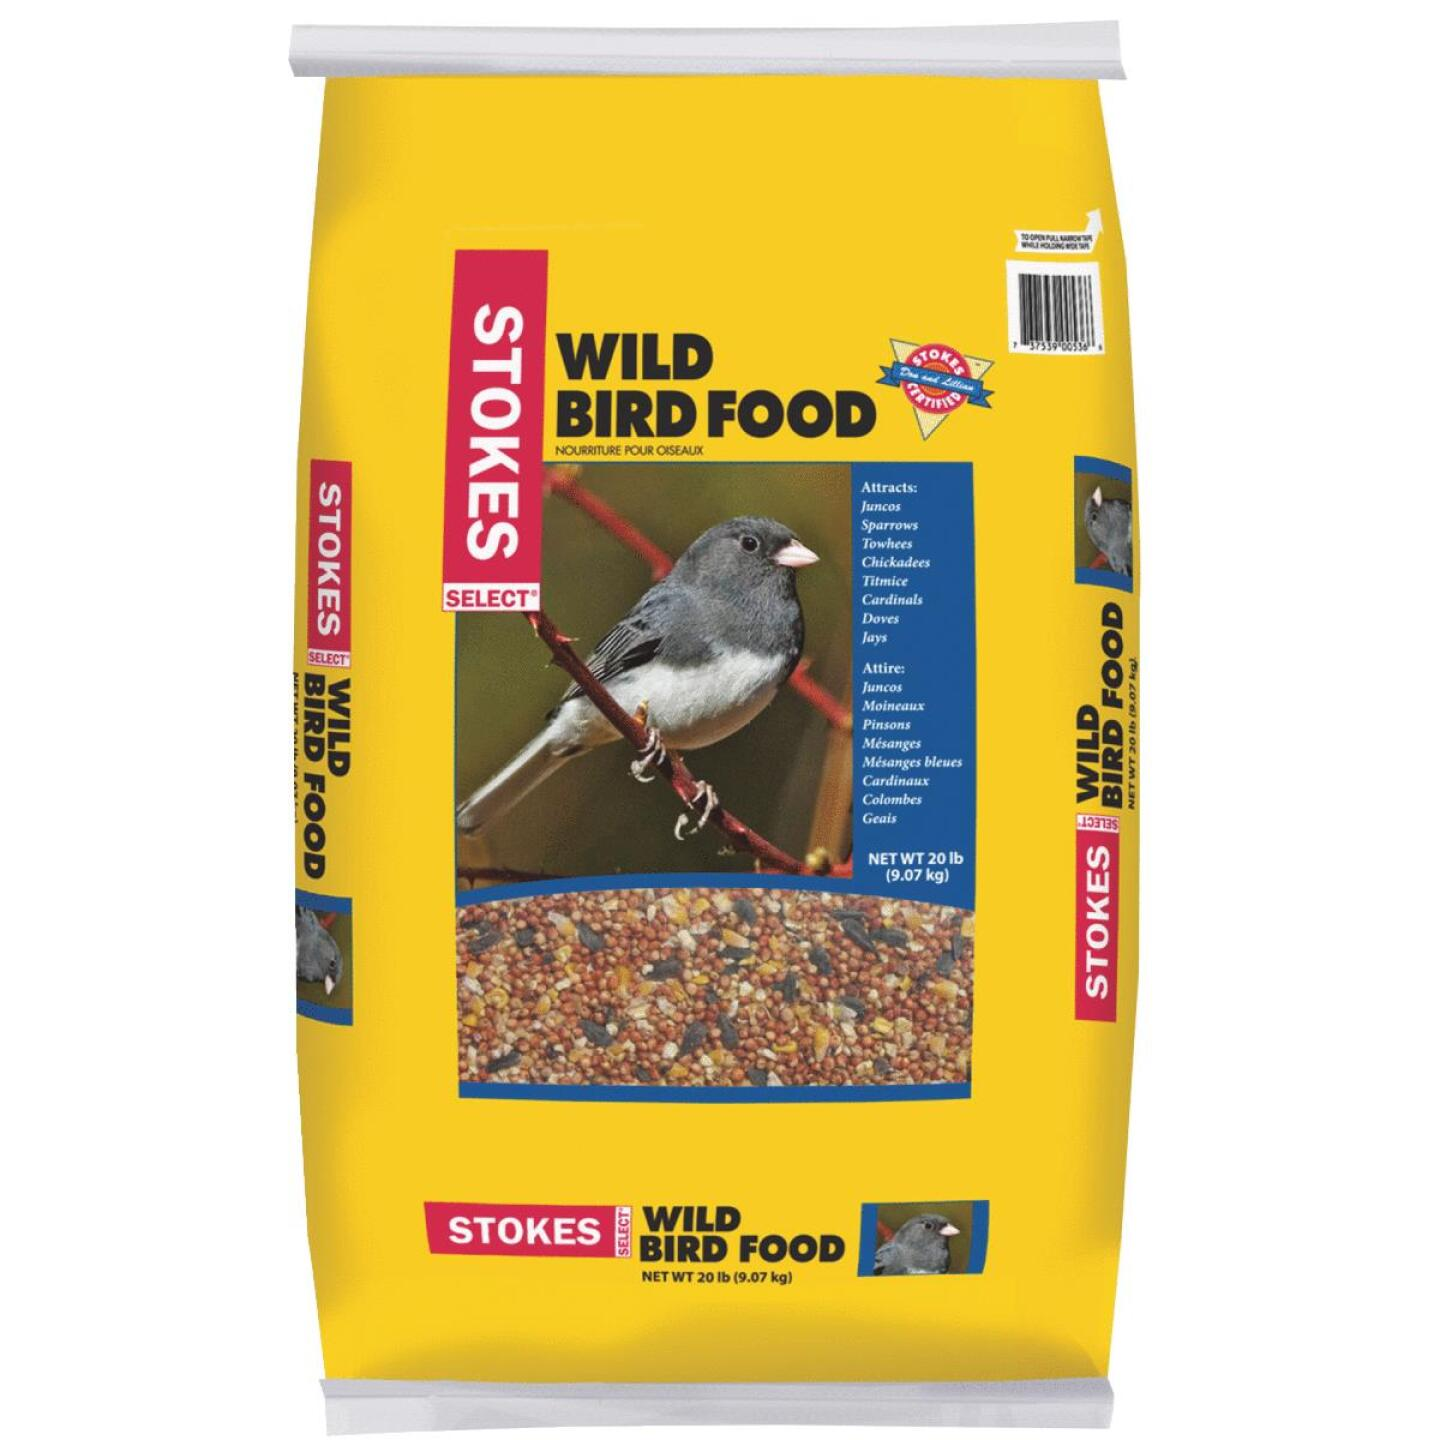 Stokes Select 20 Lb. Wild Bird Food Image 1